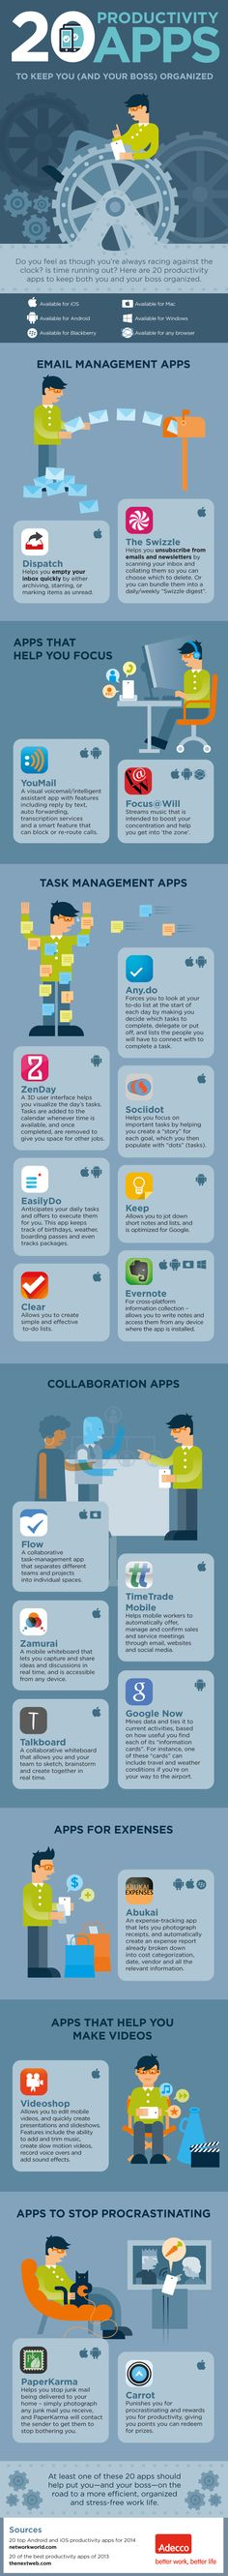 20 Productivity-Boosting Smartphone Apps - #infographic